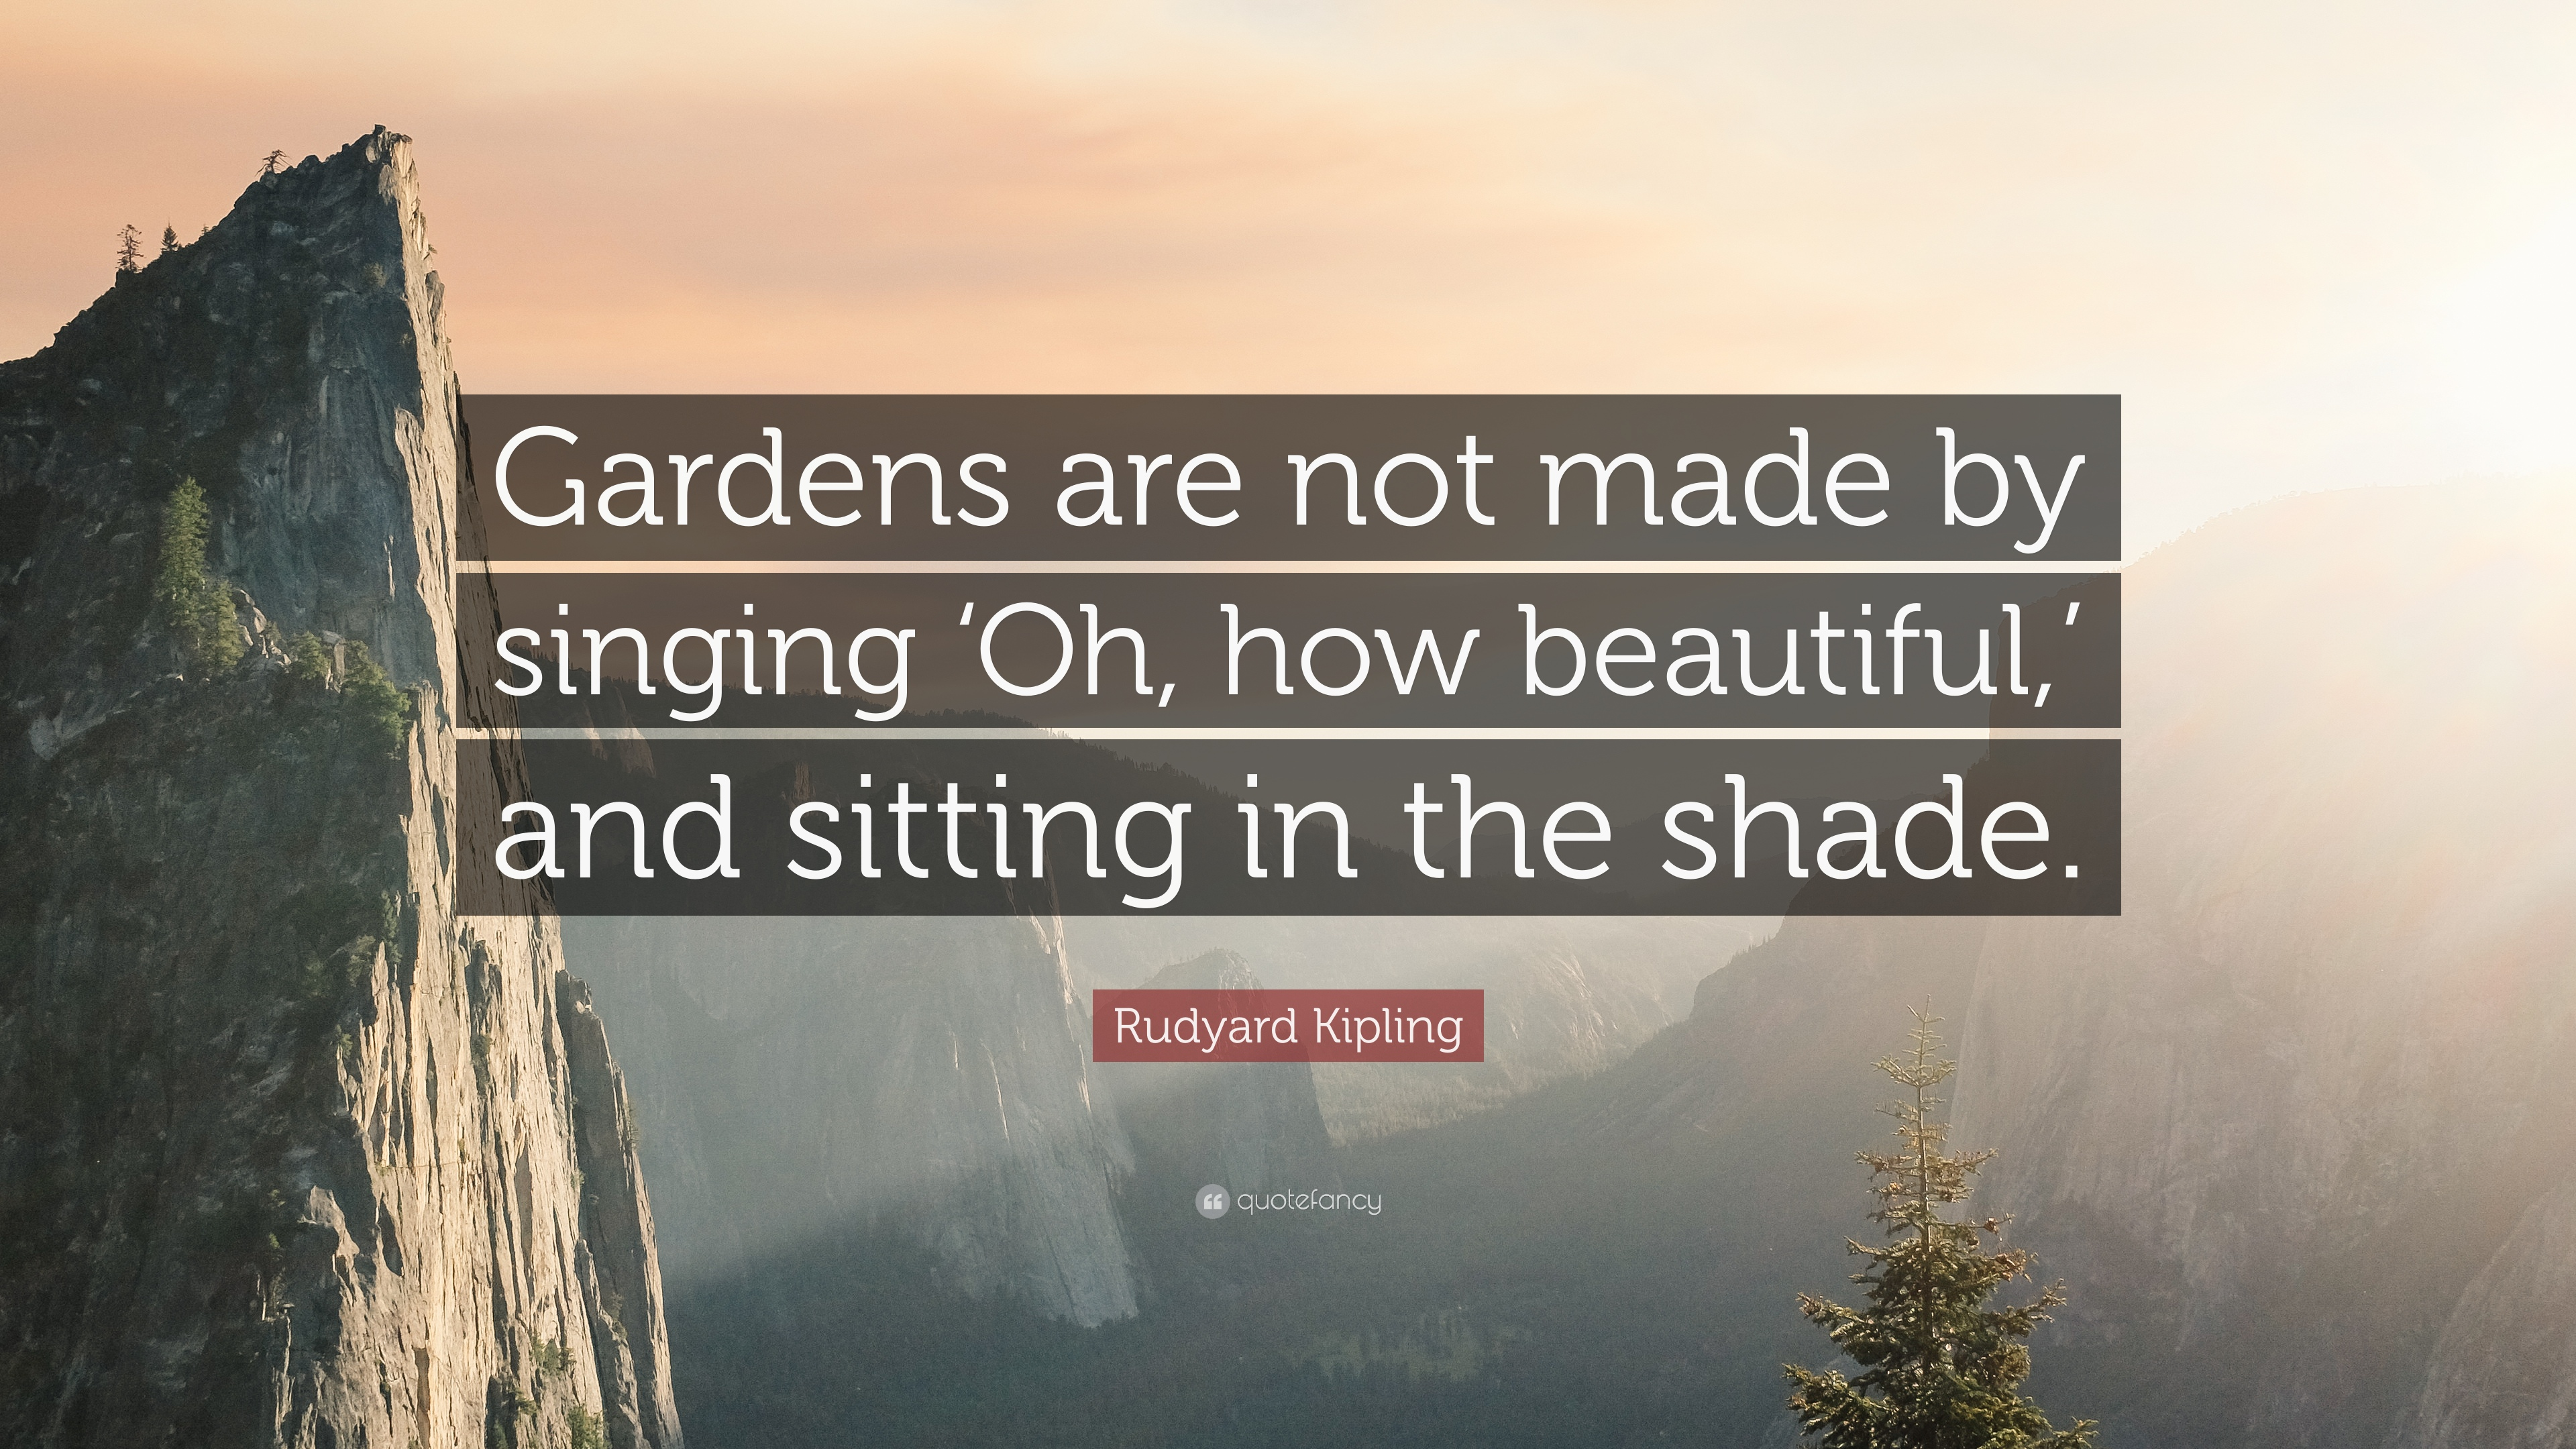 """gardens are not made by sitting in the shade essay Can a garden be a work of art """"our england is a garden, and such gardens are not made by singing, 'oh, how beautiful' and sitting in the shade."""